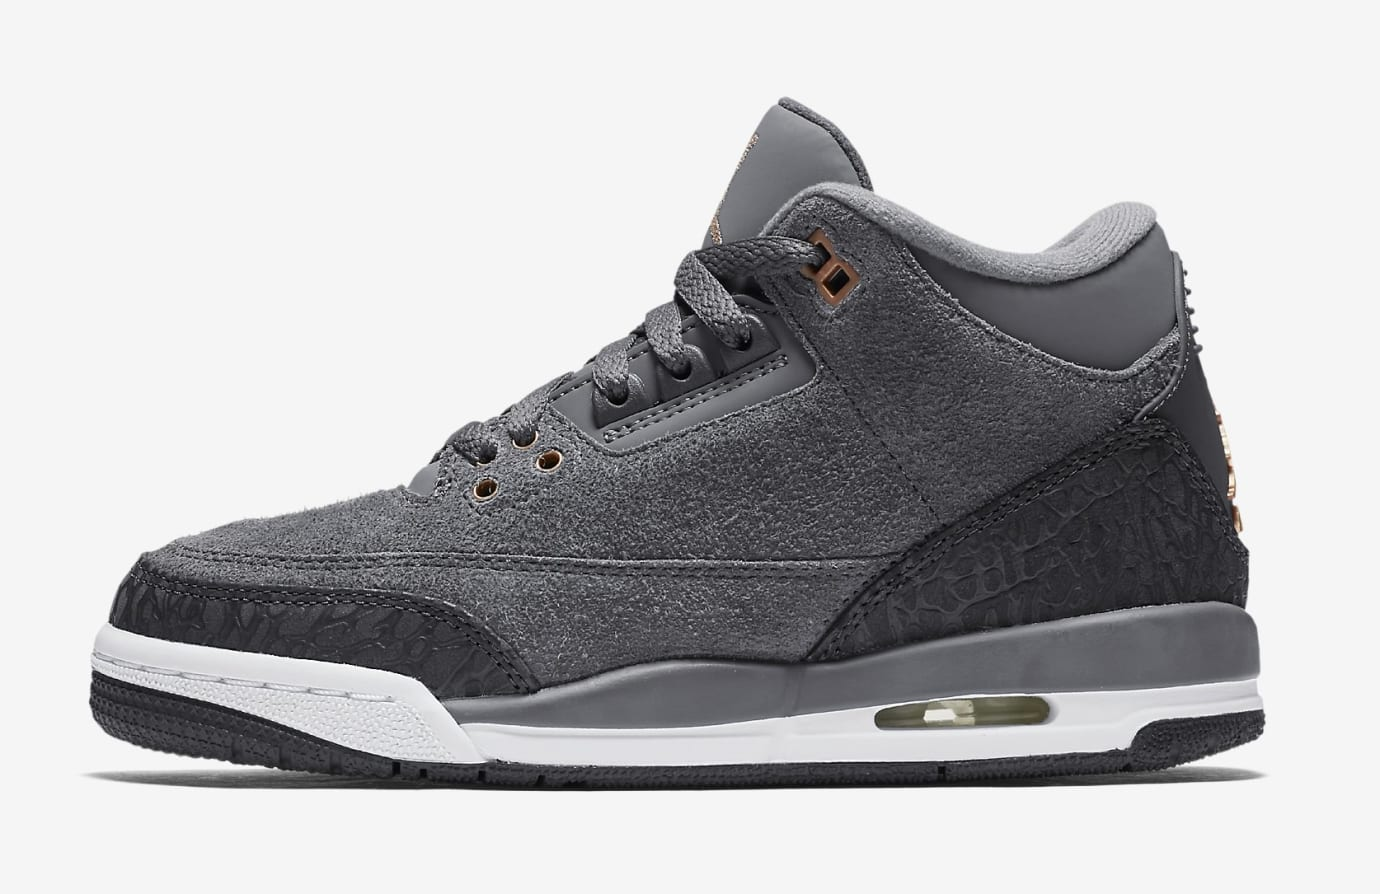 'Anthracite' Air Jordan 3 GG 441140-035 (Medial)